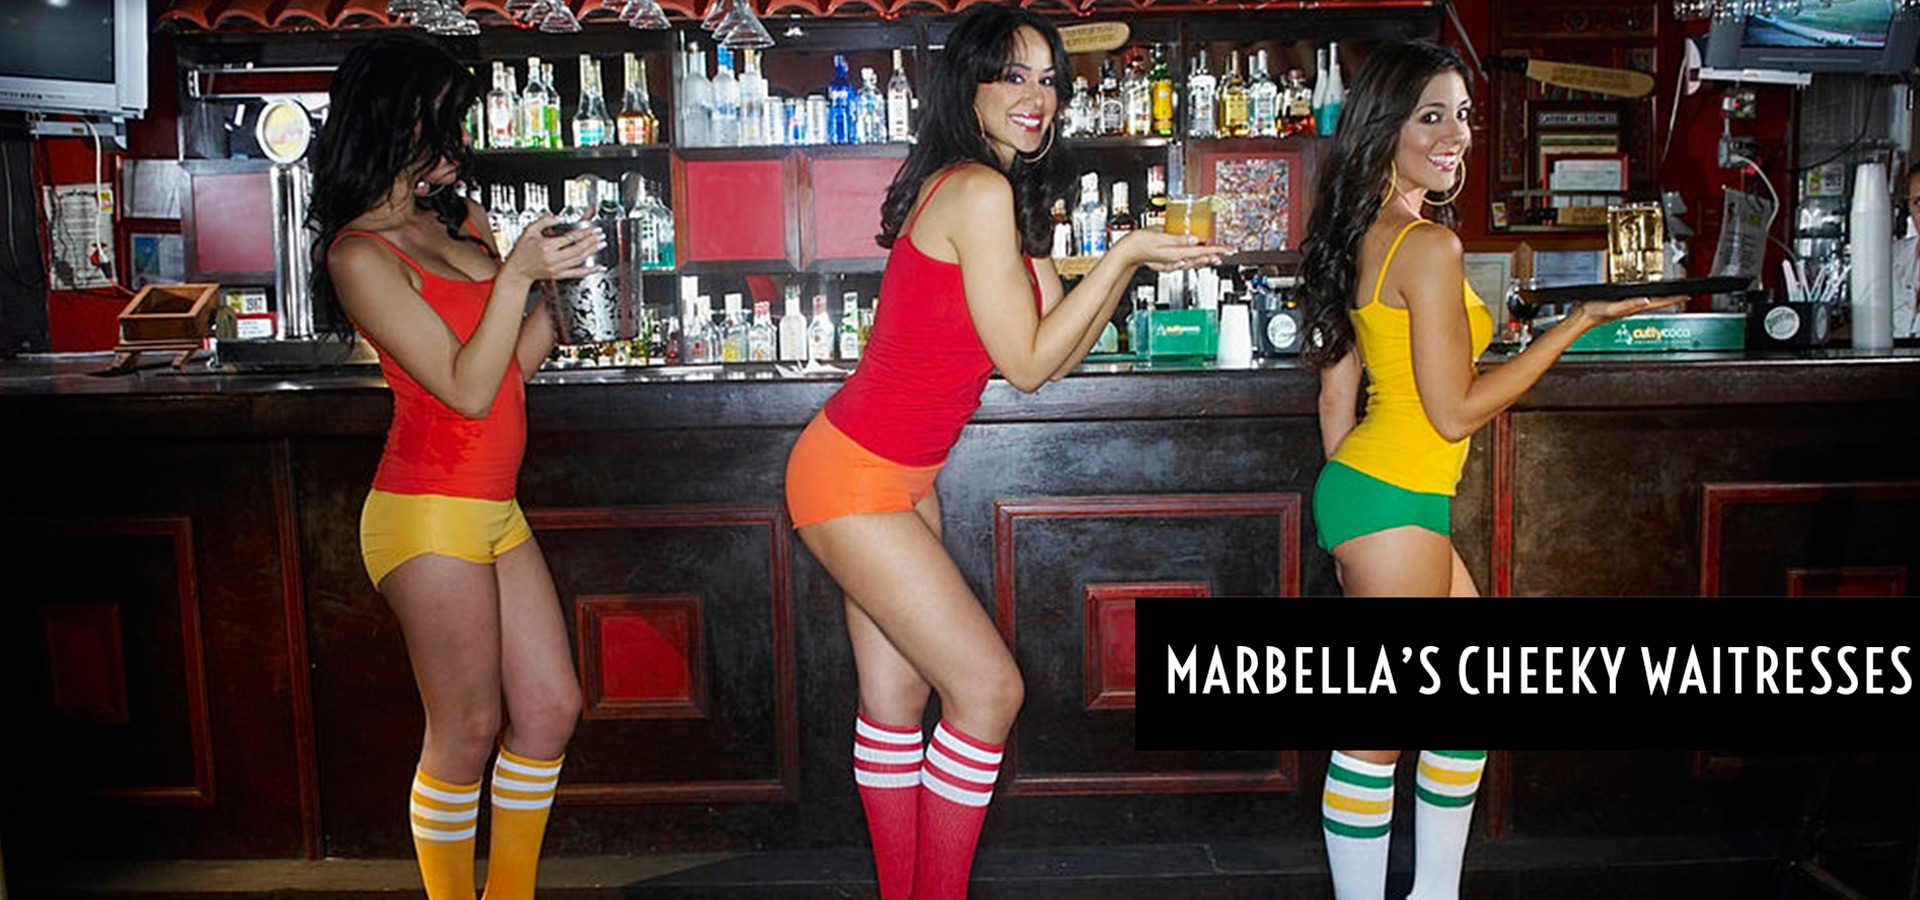 Cheeky Waitresses for hire Marbella - Cheeky Waitresses for hire Costa del Sol - Marbellas Cheeky Waitresses